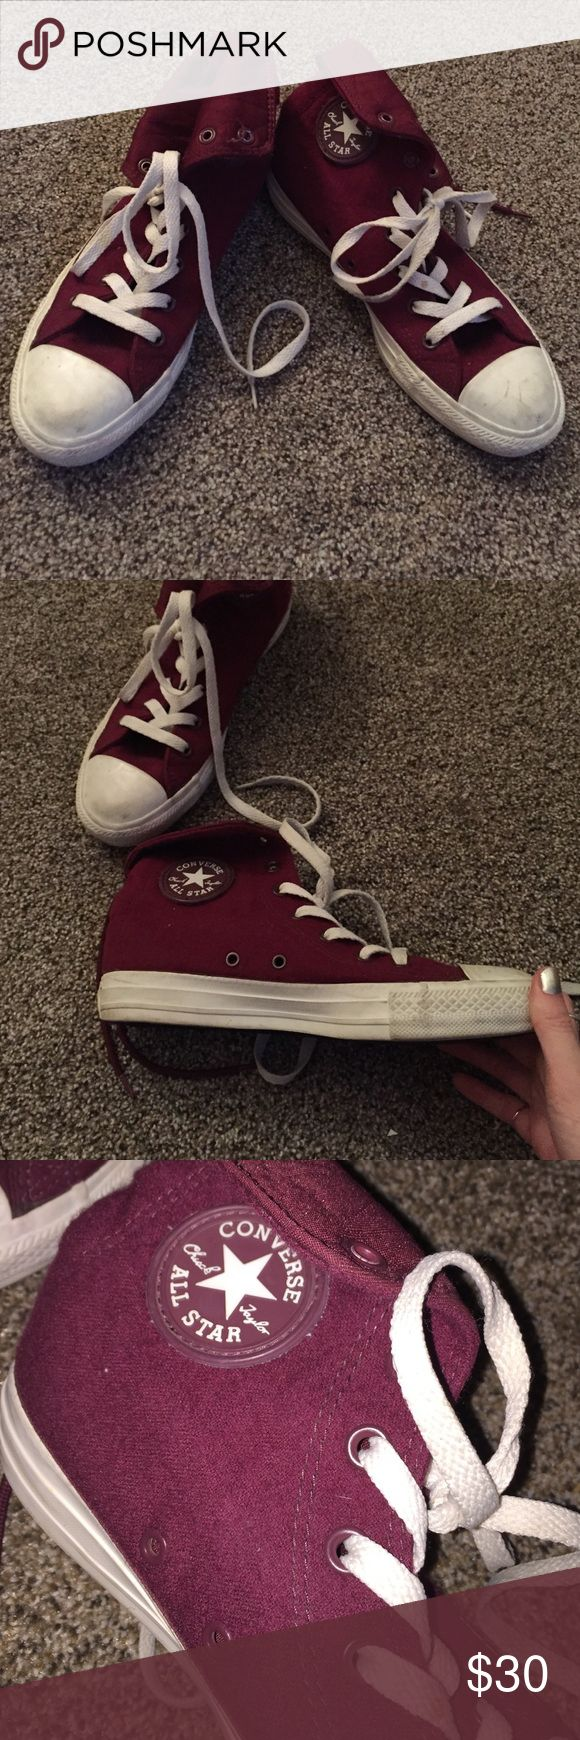 Gently worn maroon high tops men's size 5 Great condition, fit like an 8 or 8.5 super cute! Converse Shoes Sneakers